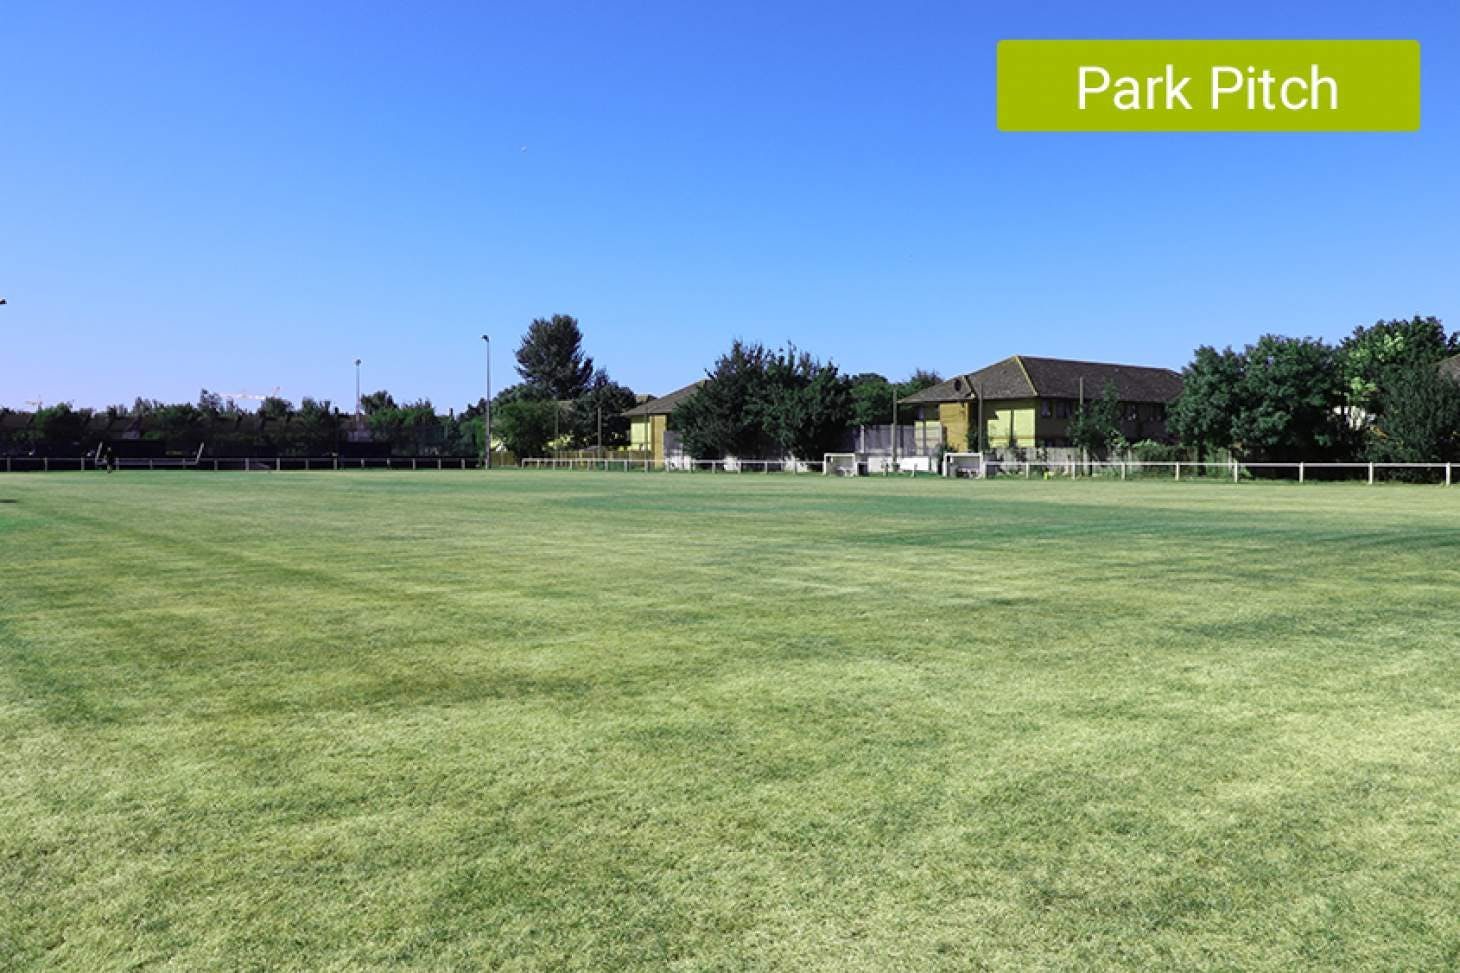 Match Day Centres 11 a side | Grass football pitch